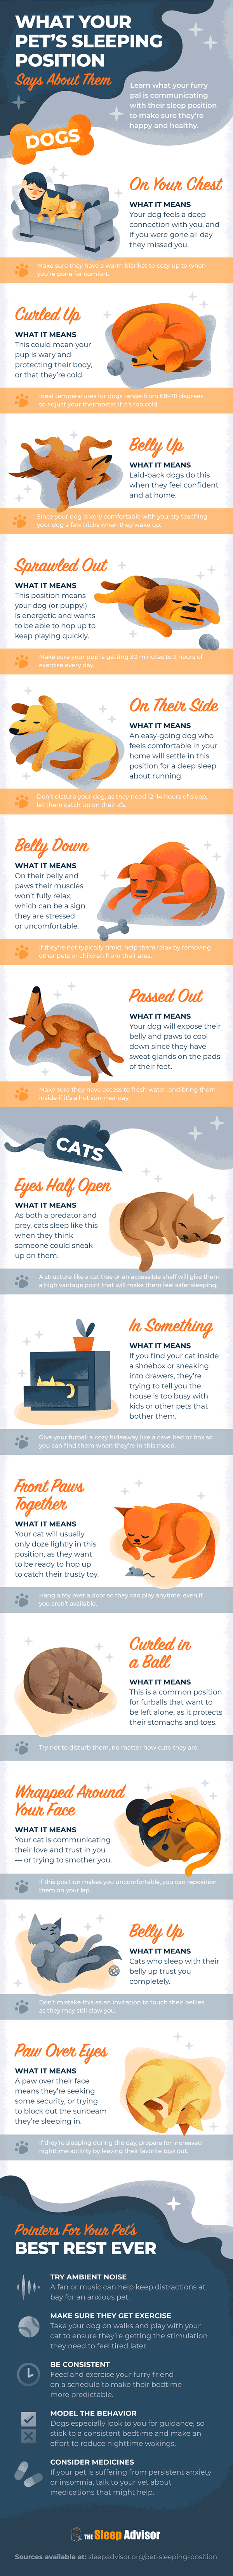 Pet sleeping position infographic